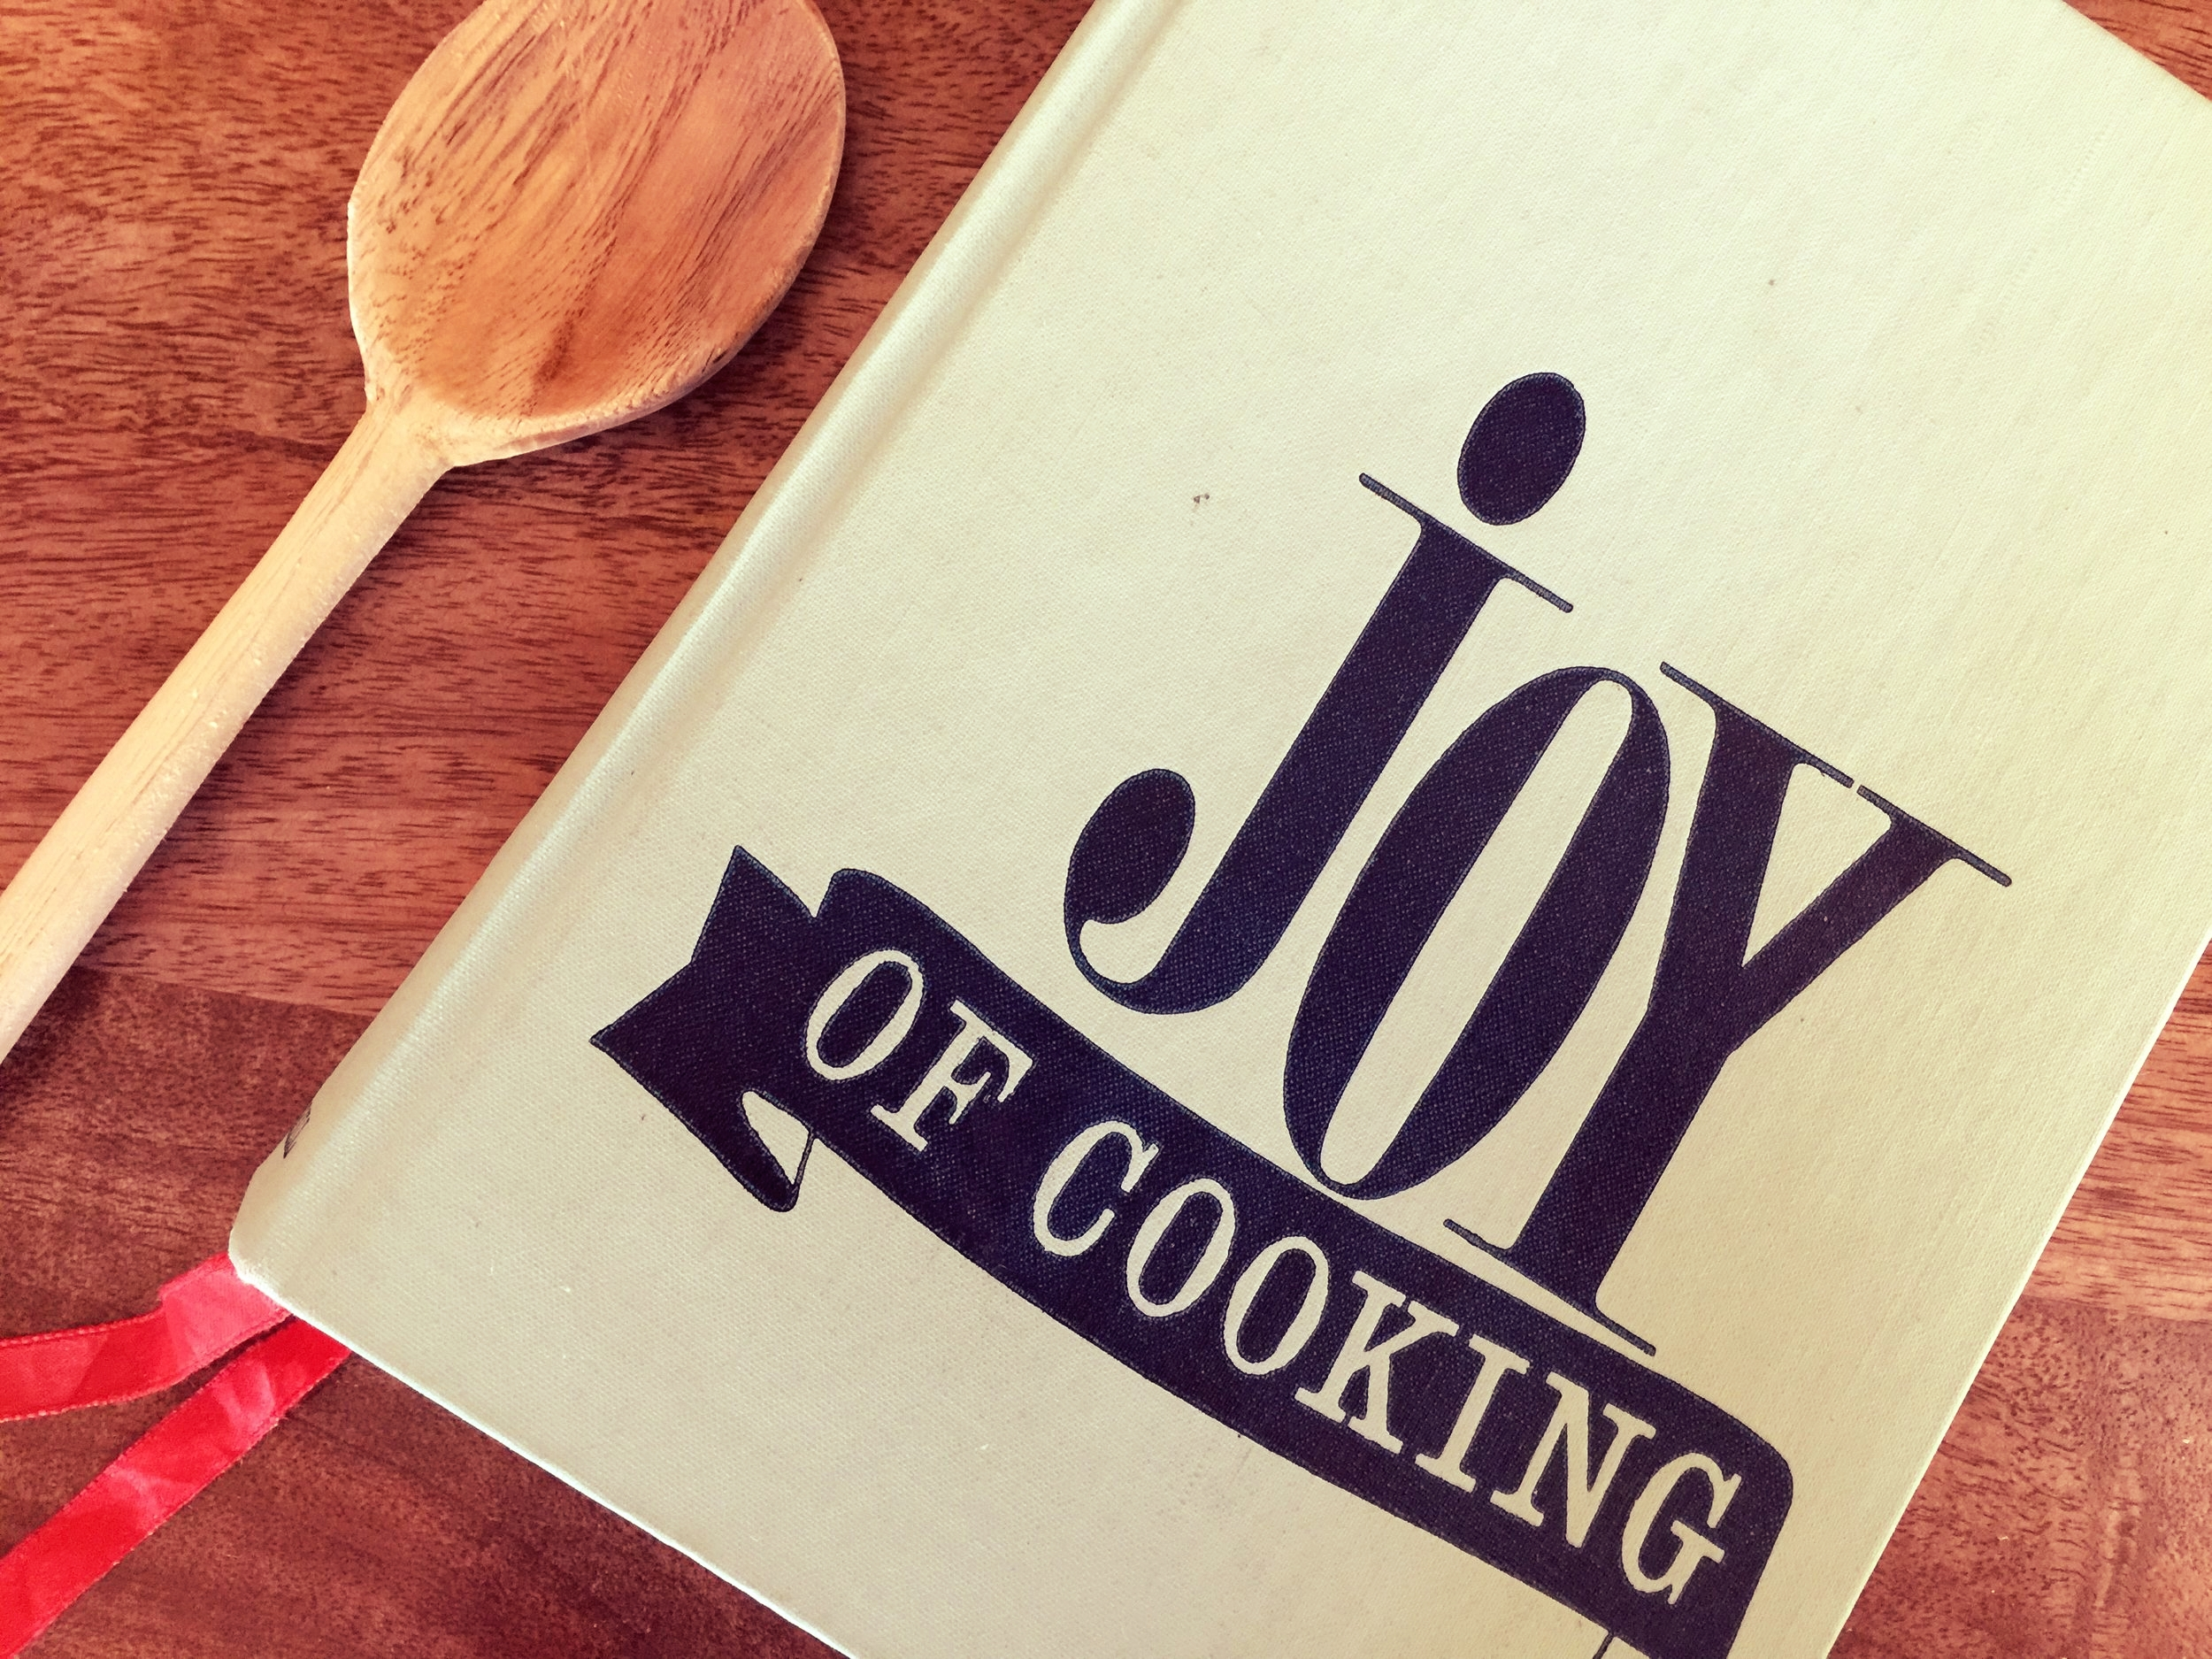 One of my favorite cookbooks, The Joy of Cooking dated 1964